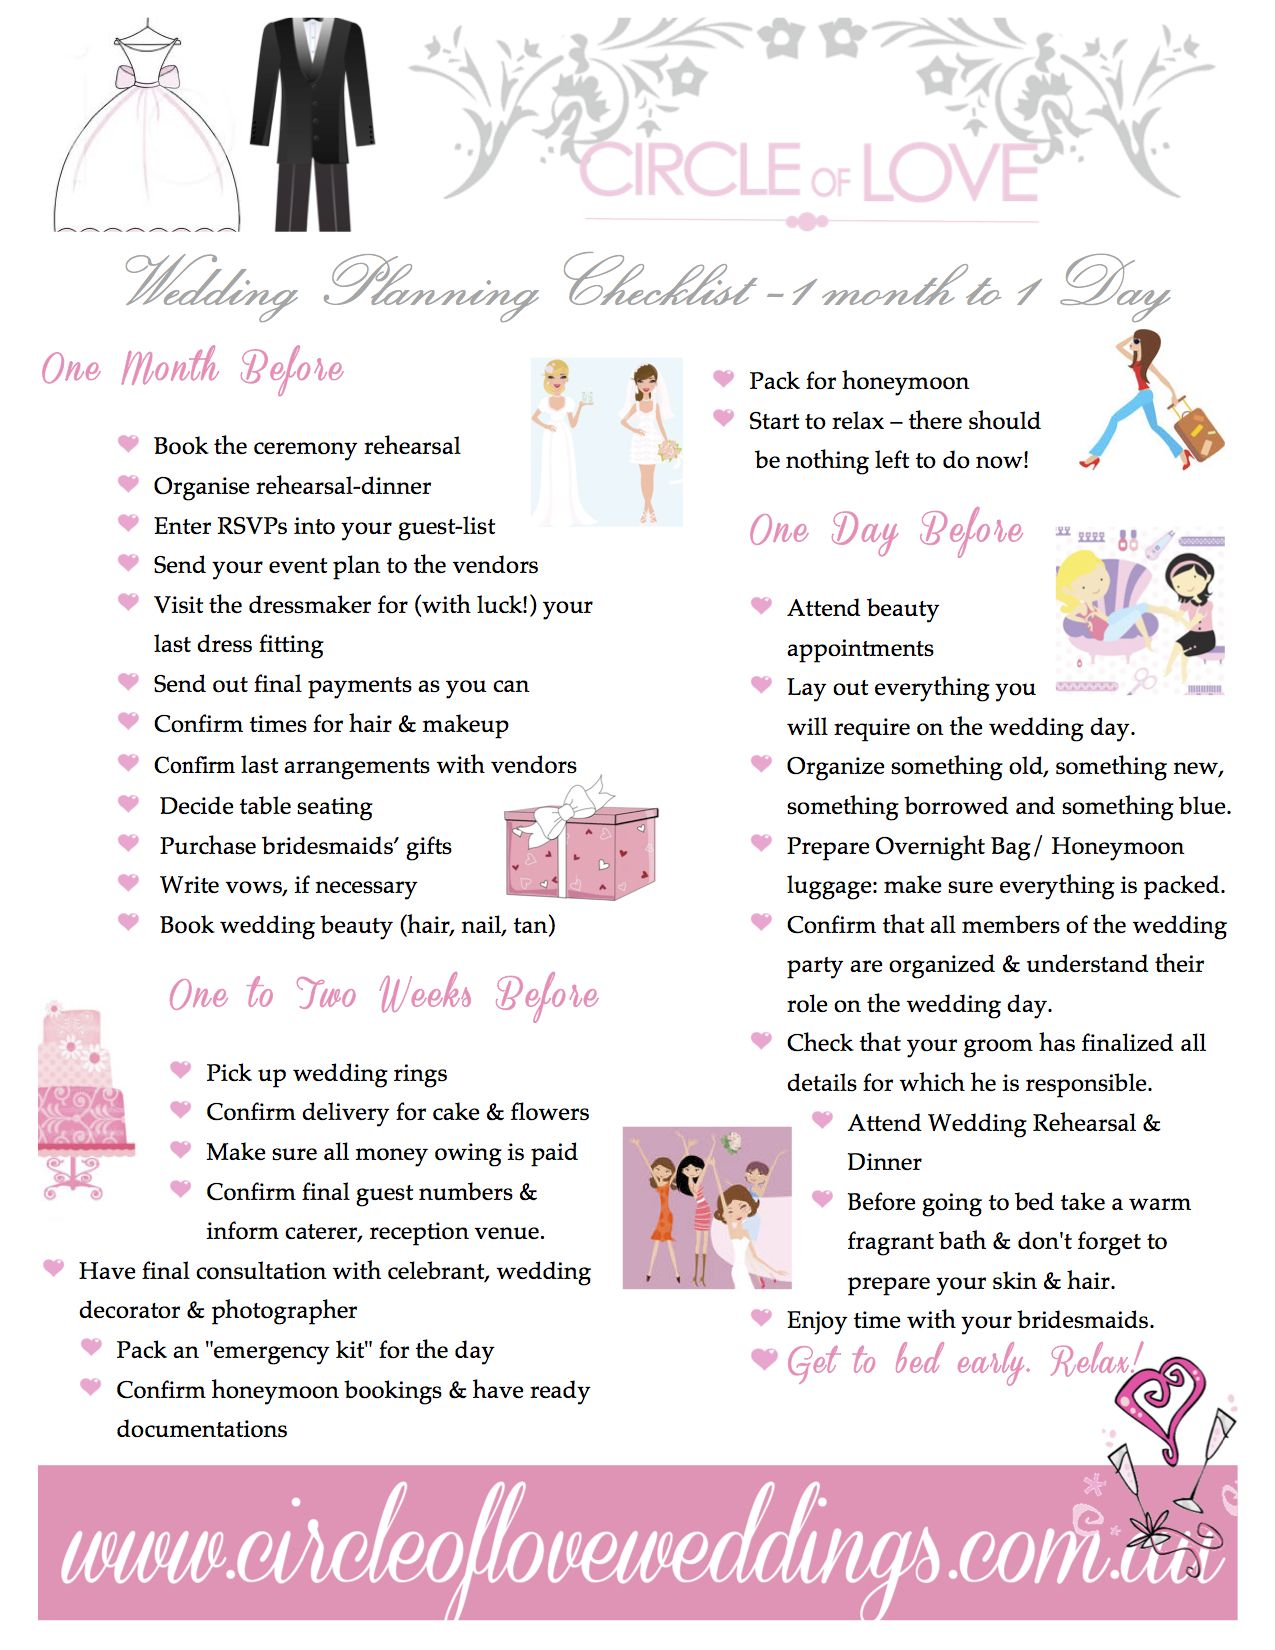 3 Wedding Planning checklist 1 month before Download our